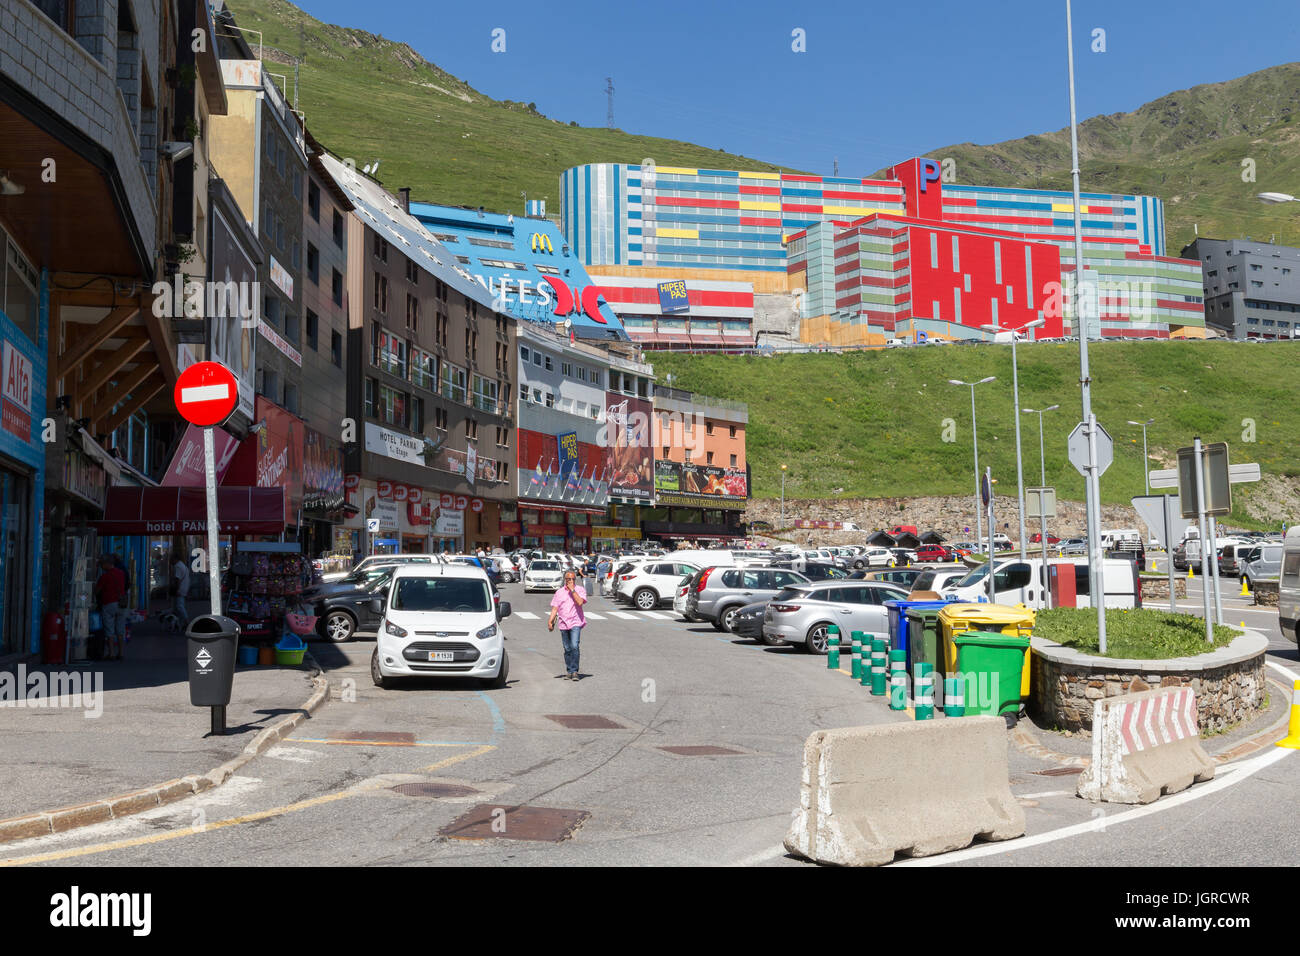 View of Andorra shoping street. - Stock Image